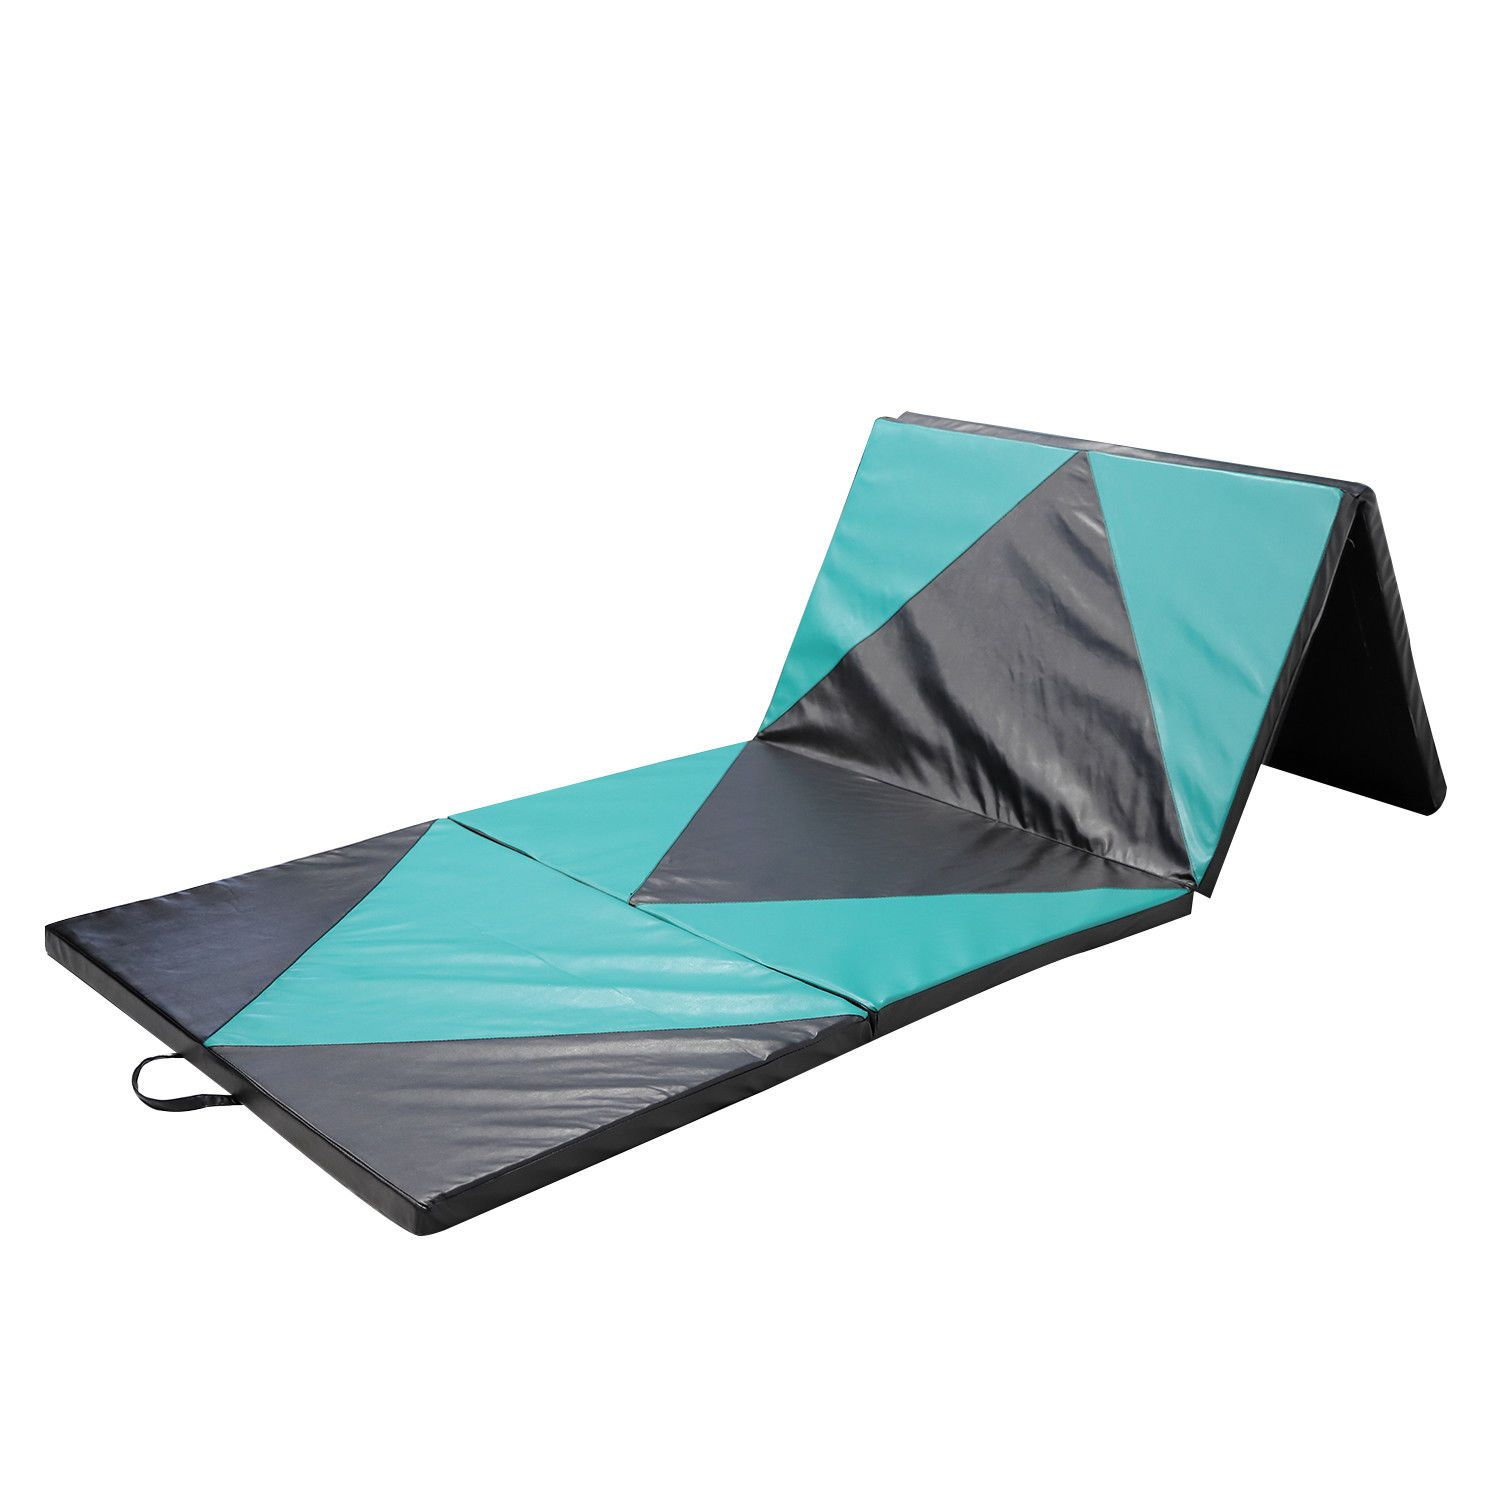 ebay fitness en panel gym gymnastics thick exercise folding us mats buy mat